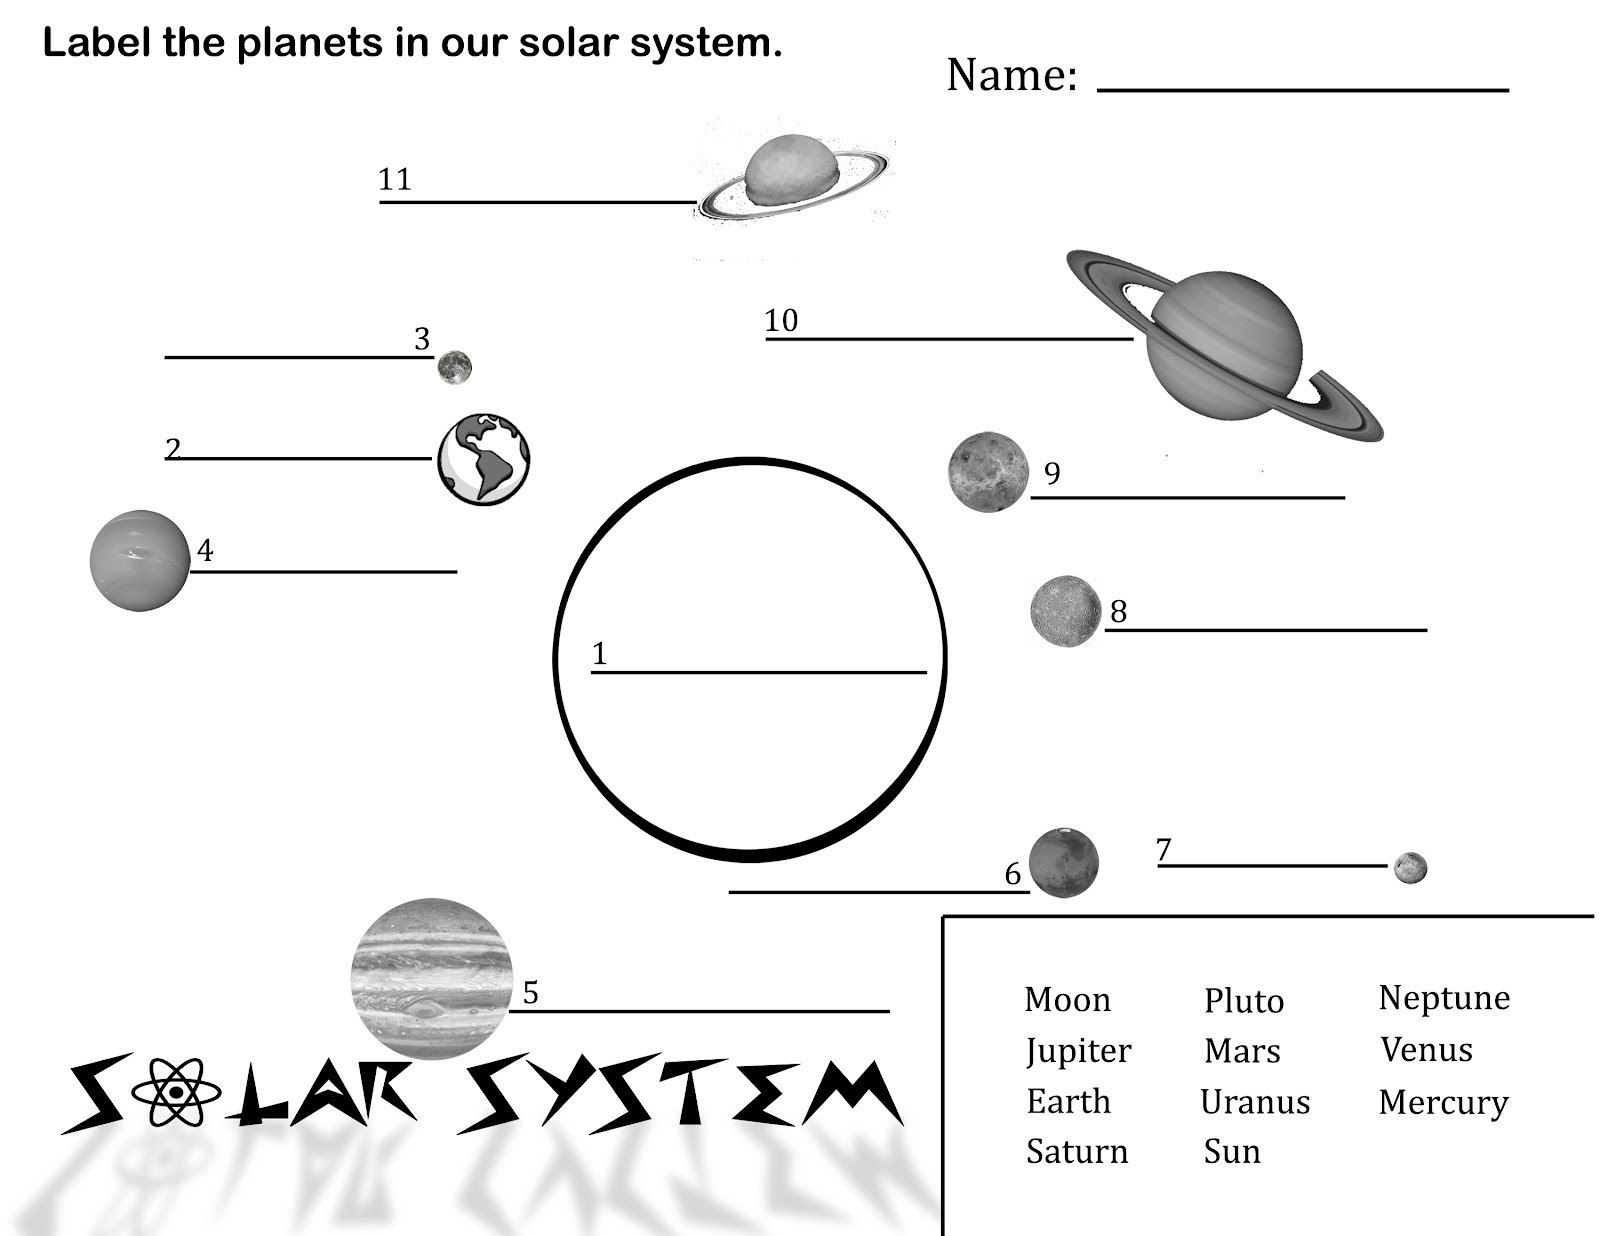 Solar System Worksheets 3rd Grade Photos - Toribeedesign